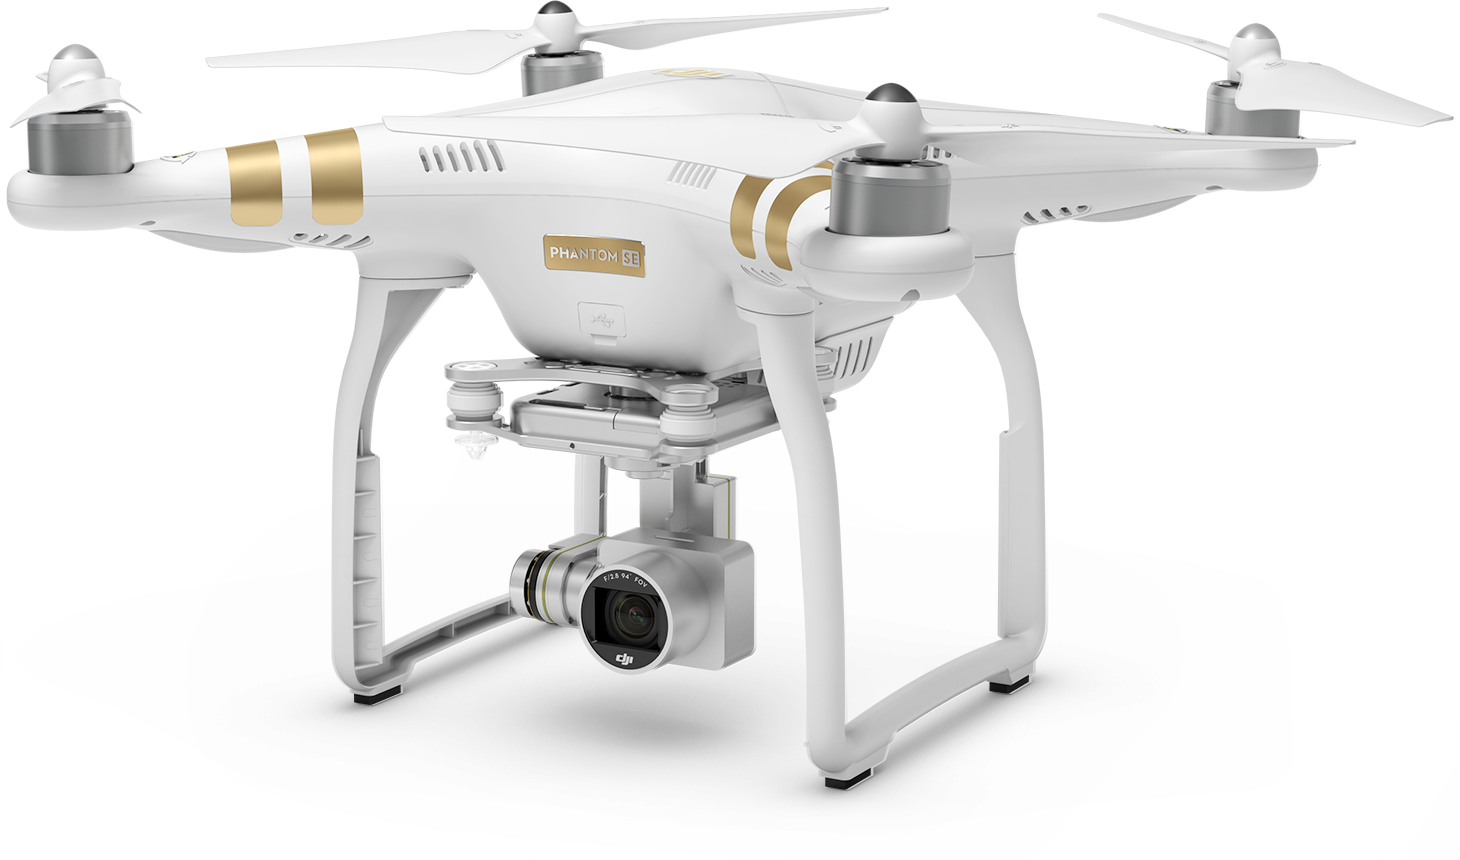 DJI Drone Data Exposed due to Cloud Infrastructure Vulnerability